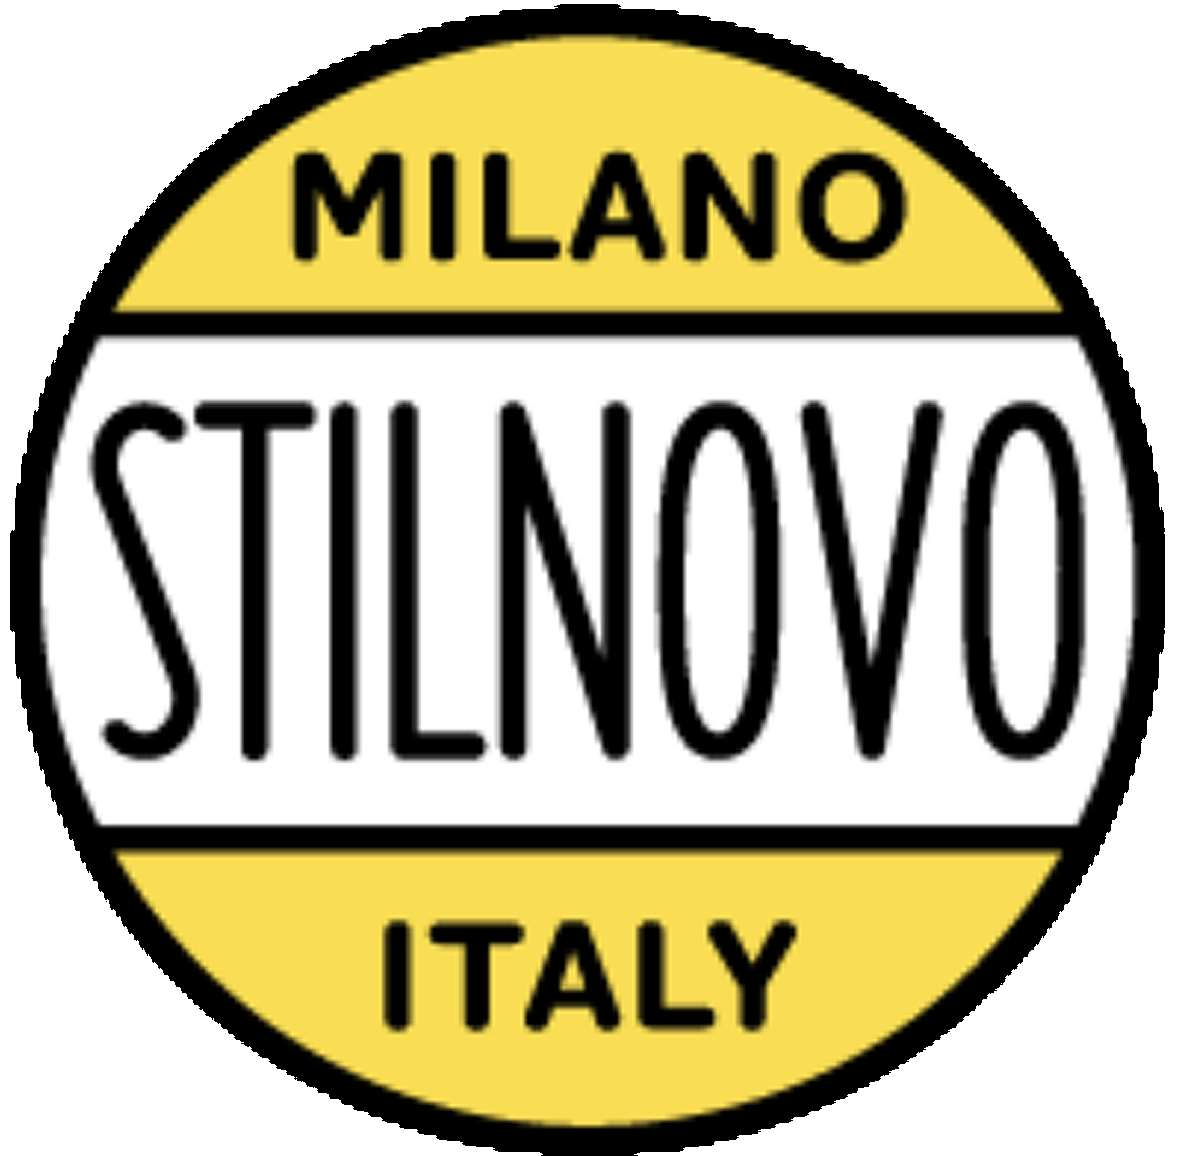 Stilnovo old logo